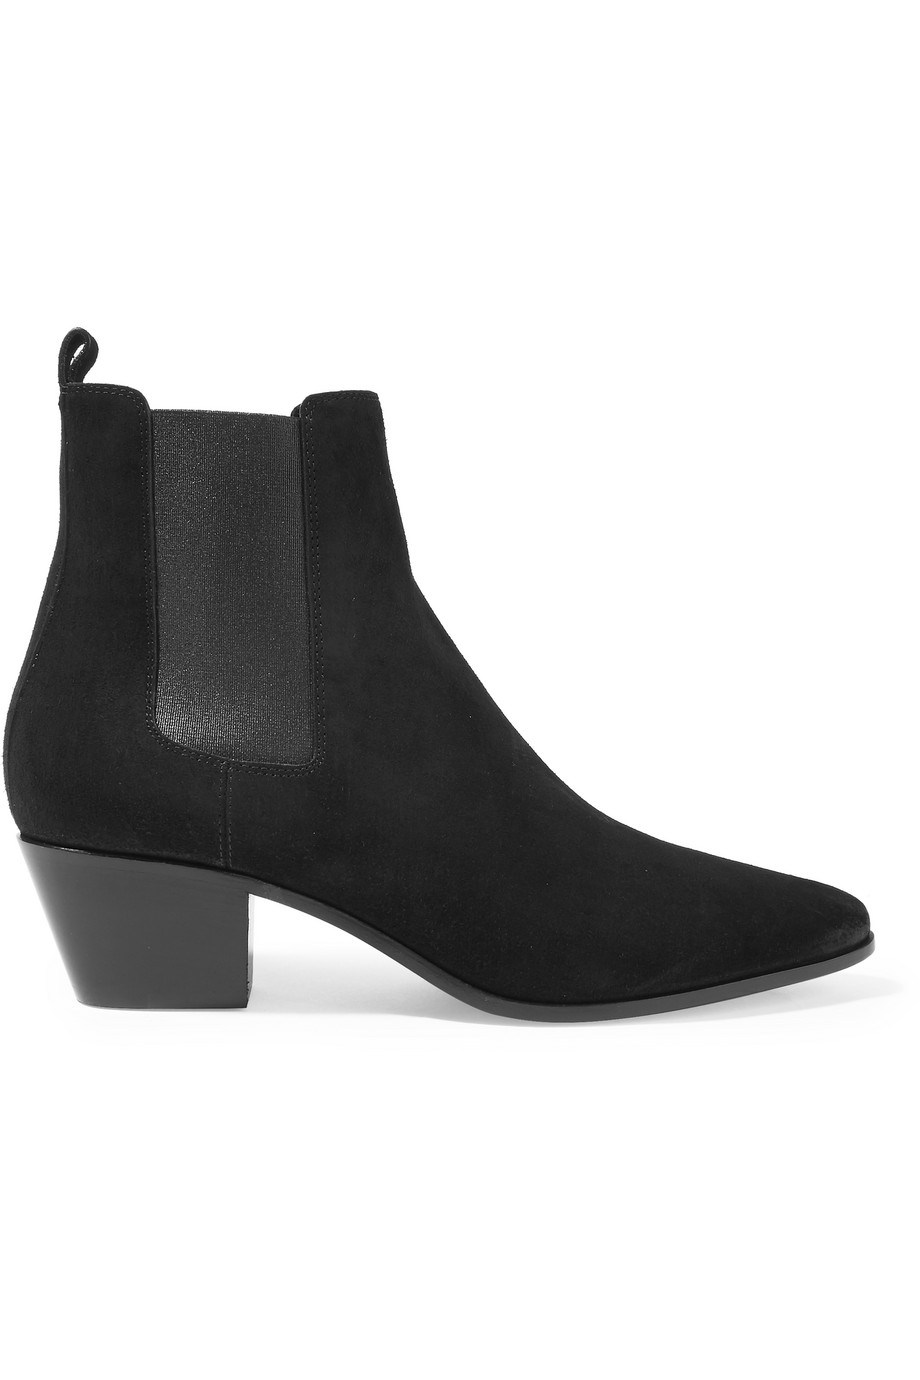 Saint Laurent Suede Chelsea Boots, Black, Women's US Size: 5, Size: 35.5